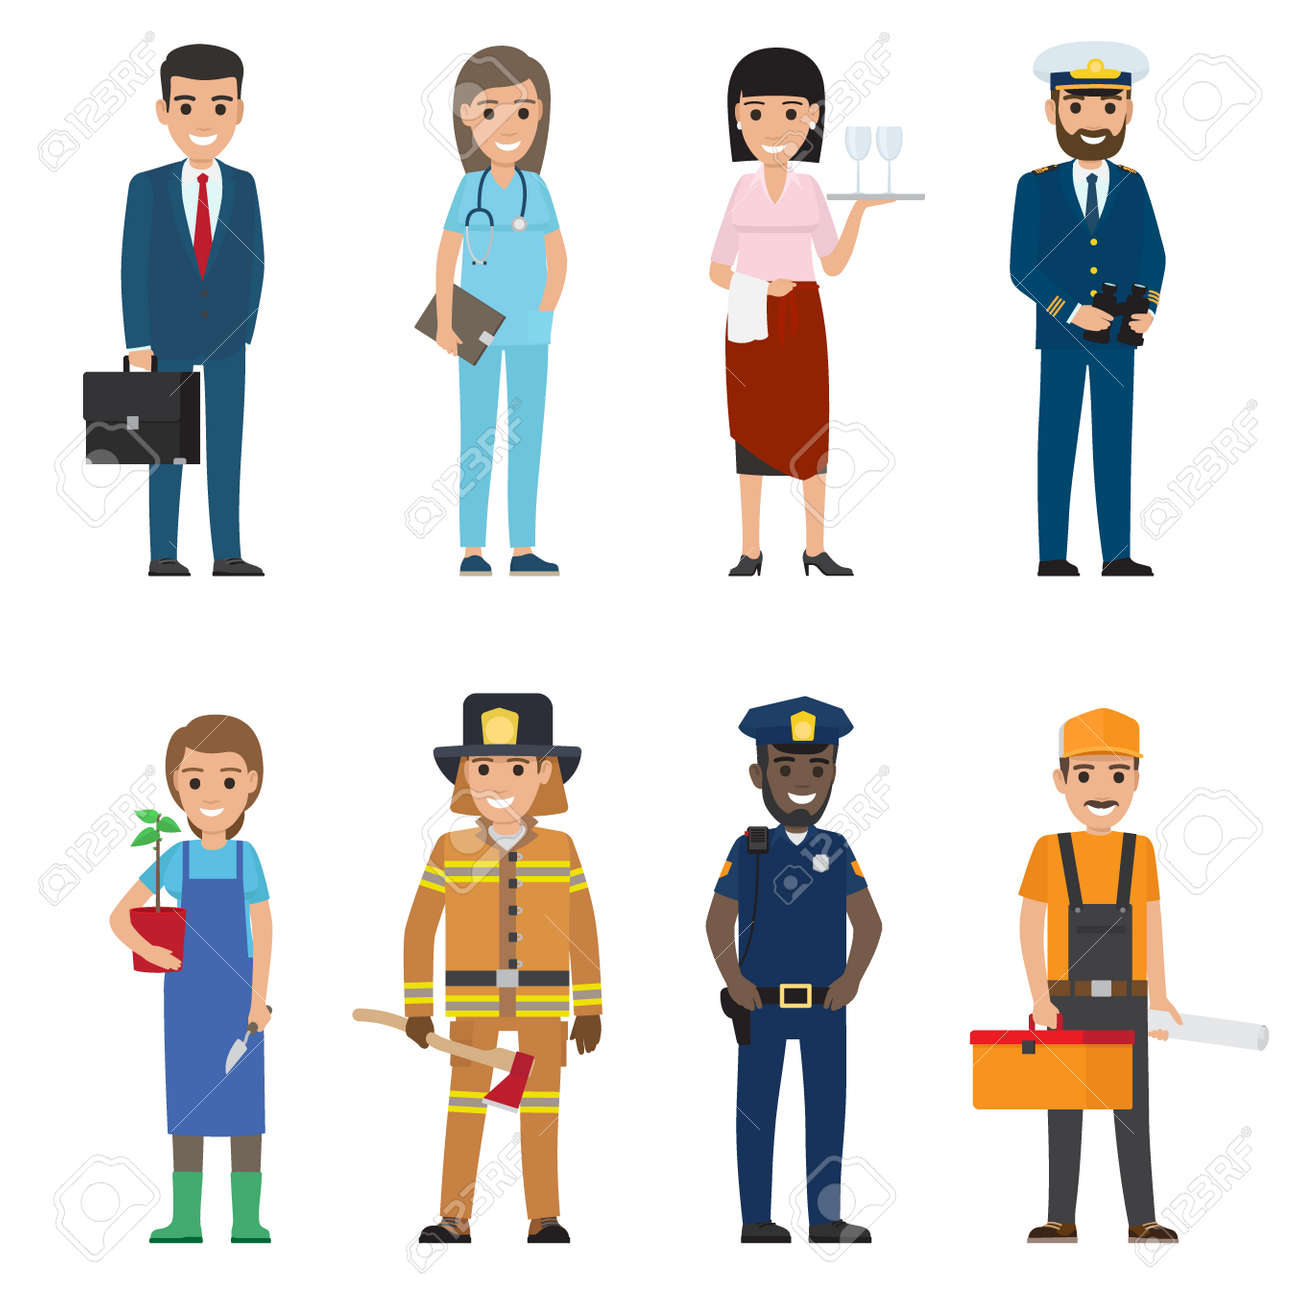 Professions people vector icons set. Different profession woman and man cartoon characters in uniform and with implements isolated on white. Occupations flat illustration for labor day, job concepts - 105602995